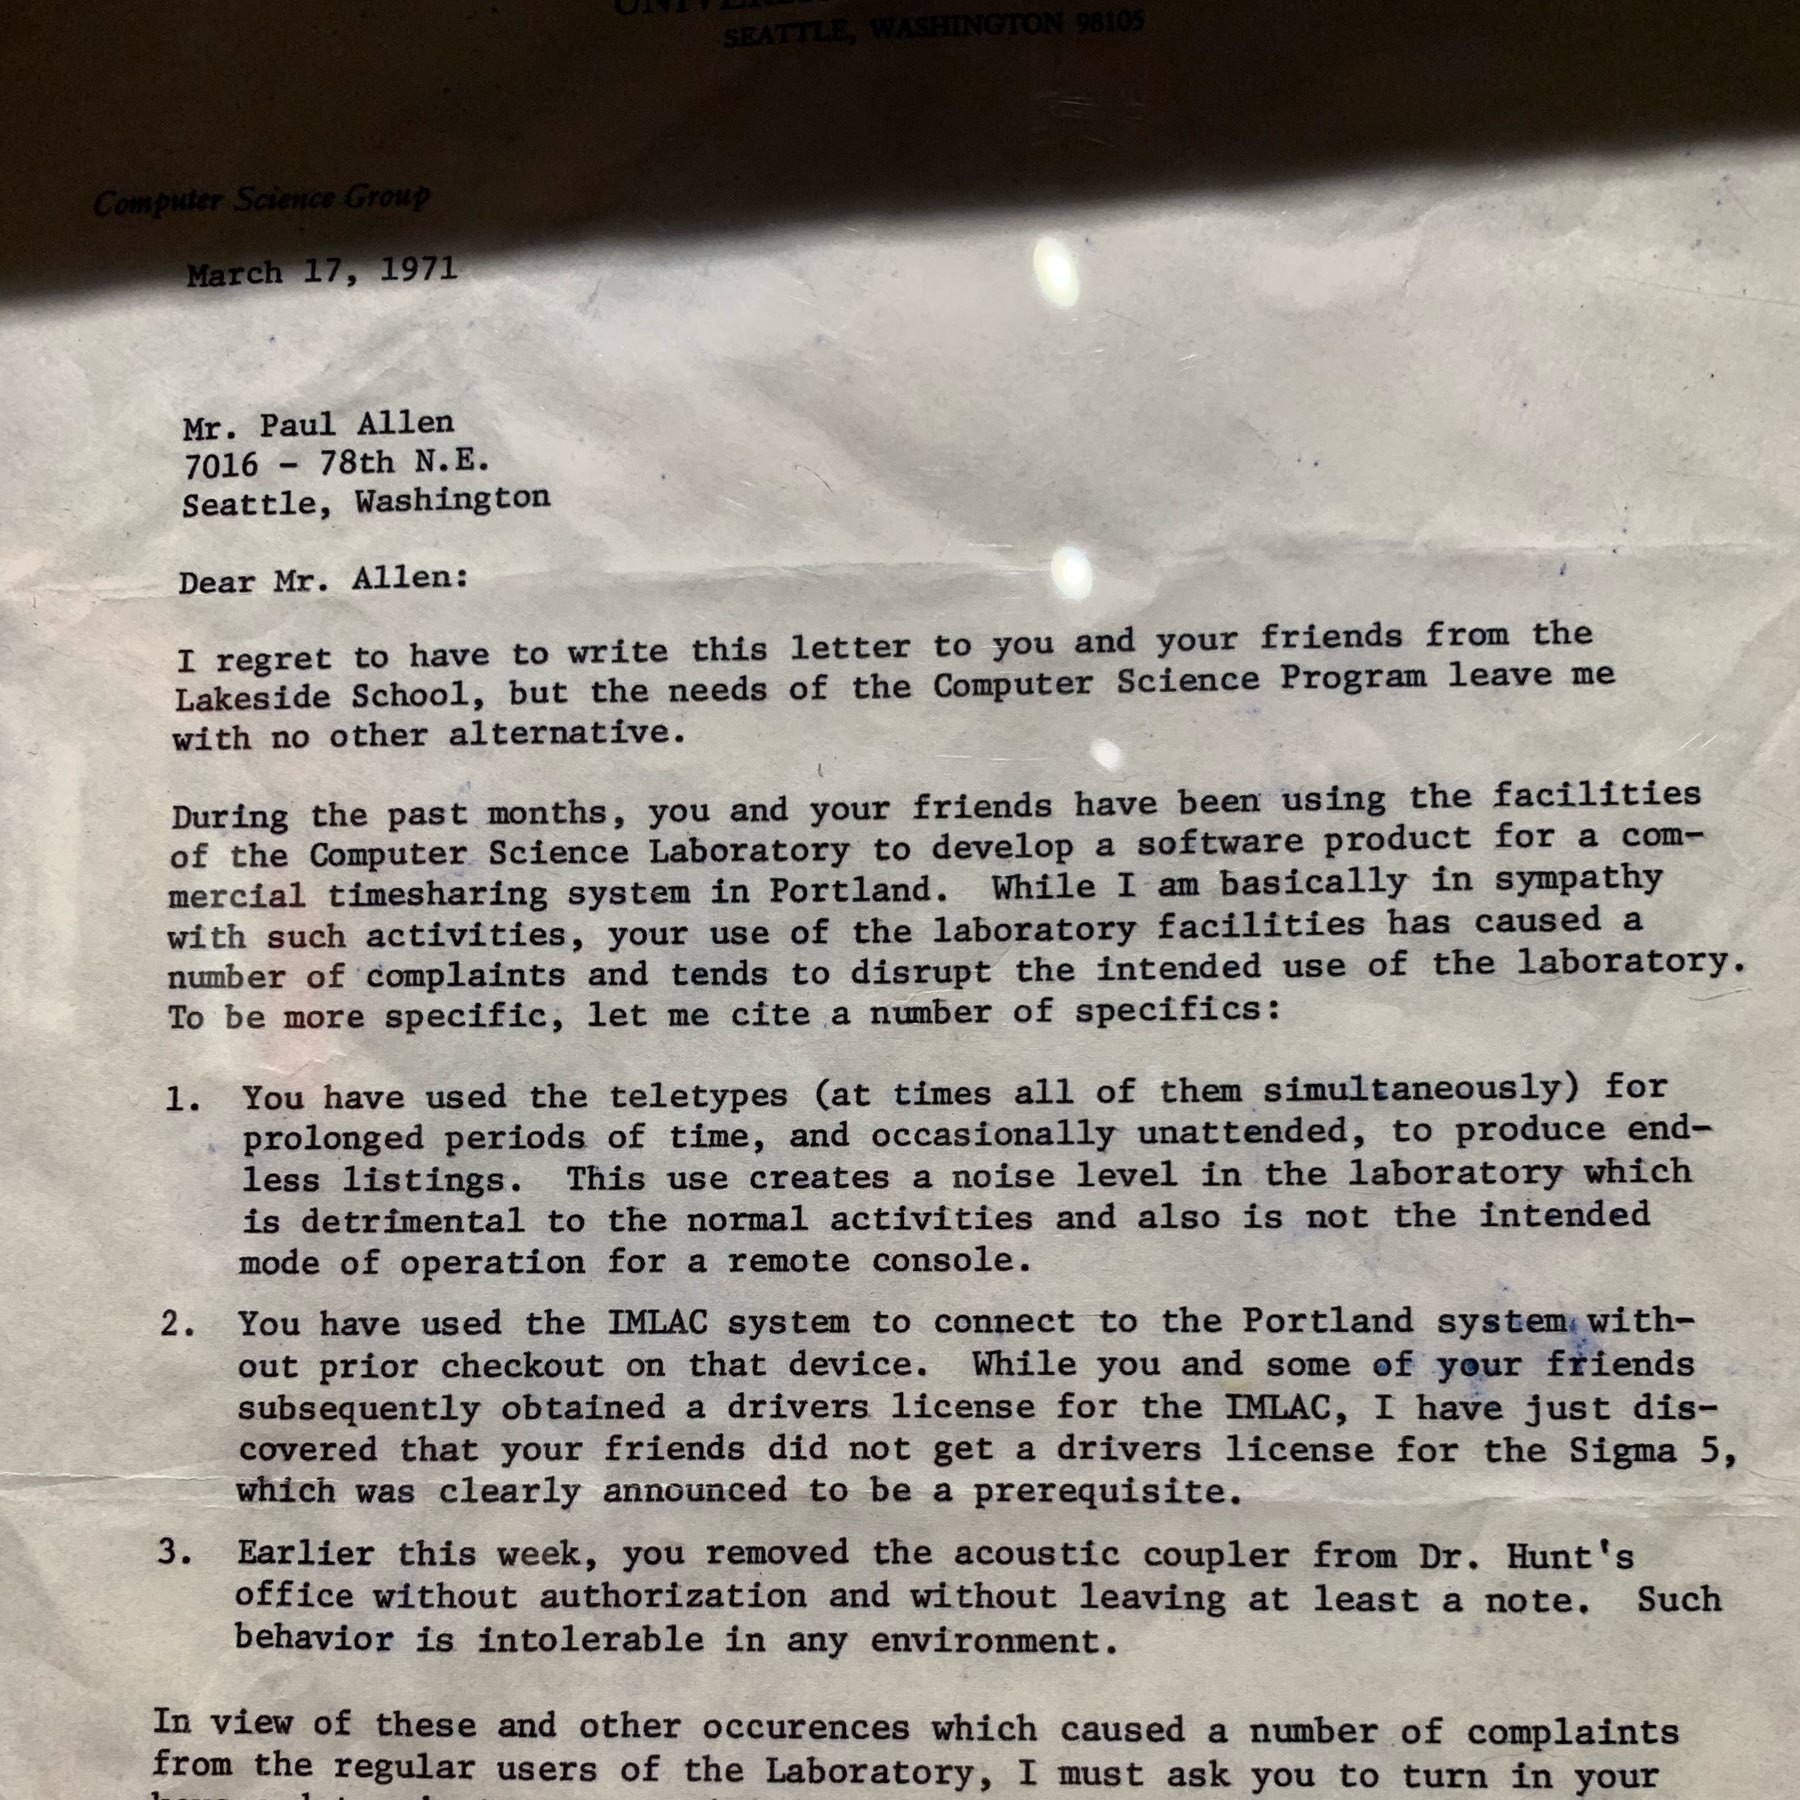 letter notifying Paul Allen and cronies they have been kicked off the time sharing sytem